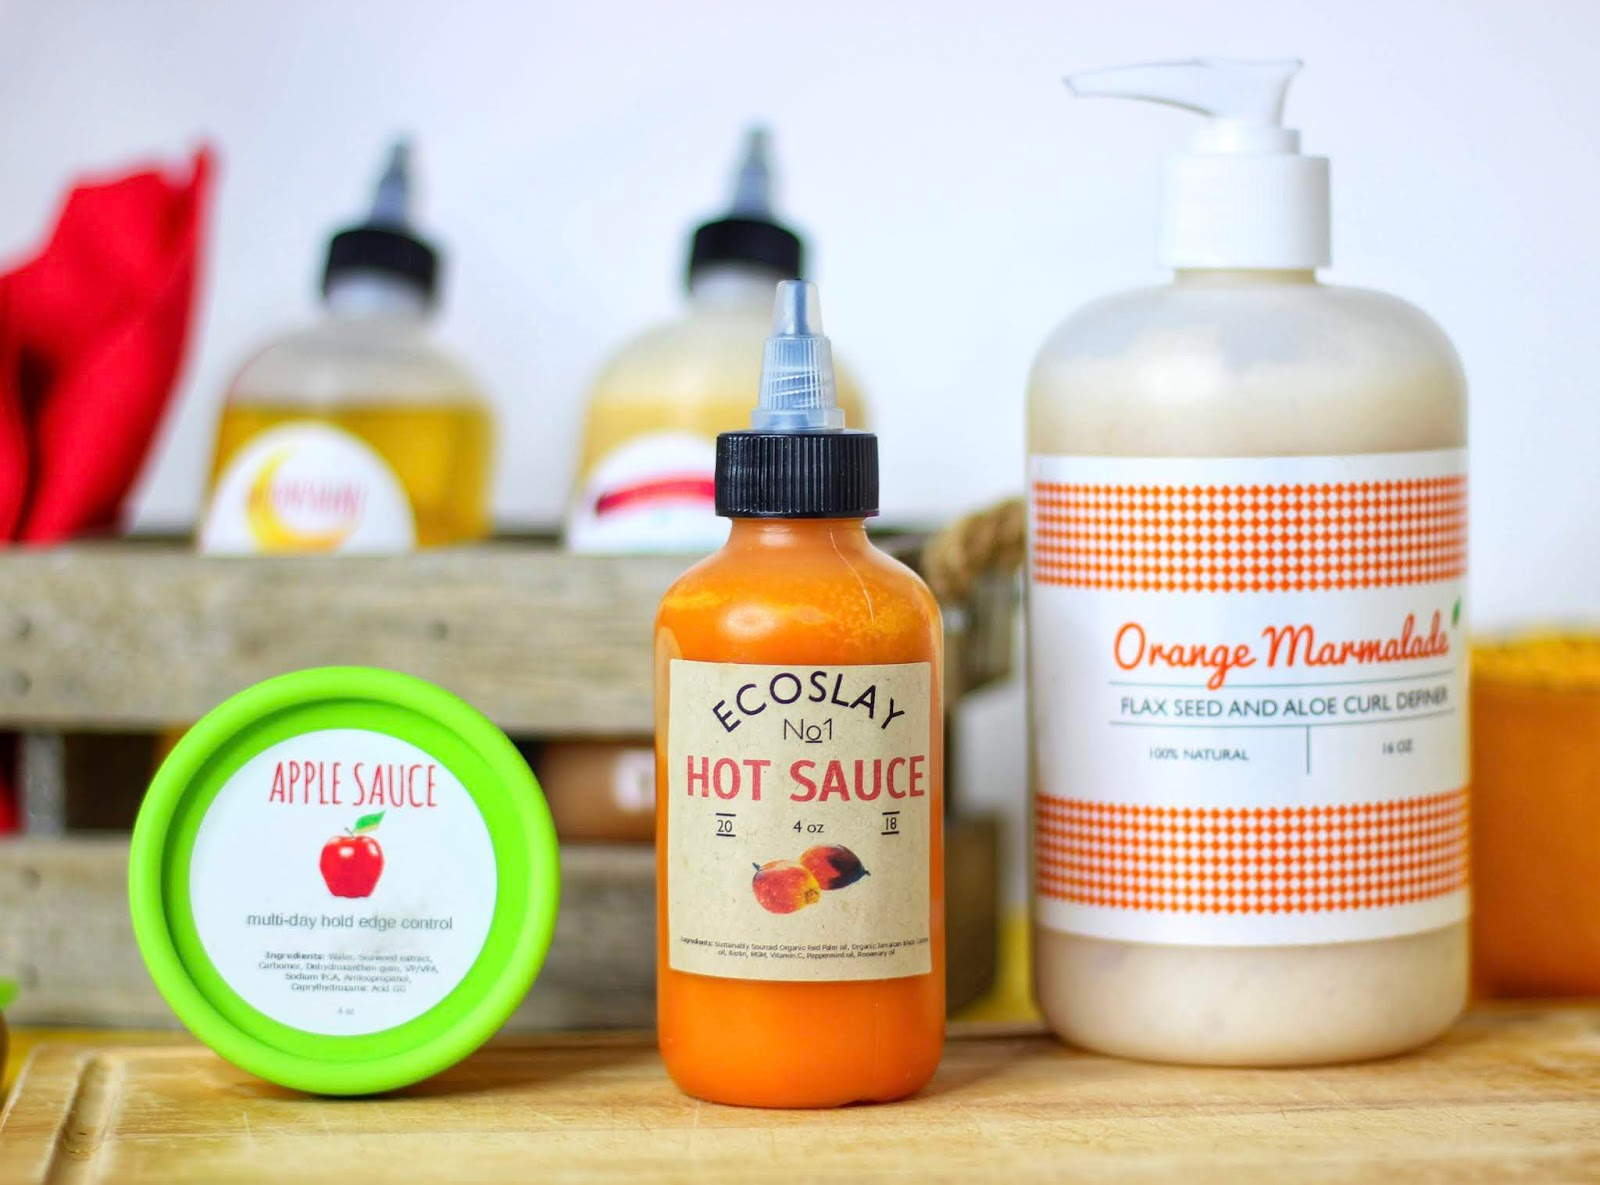 12 Black-Owned Natural Hair Brands to Watch in 2019